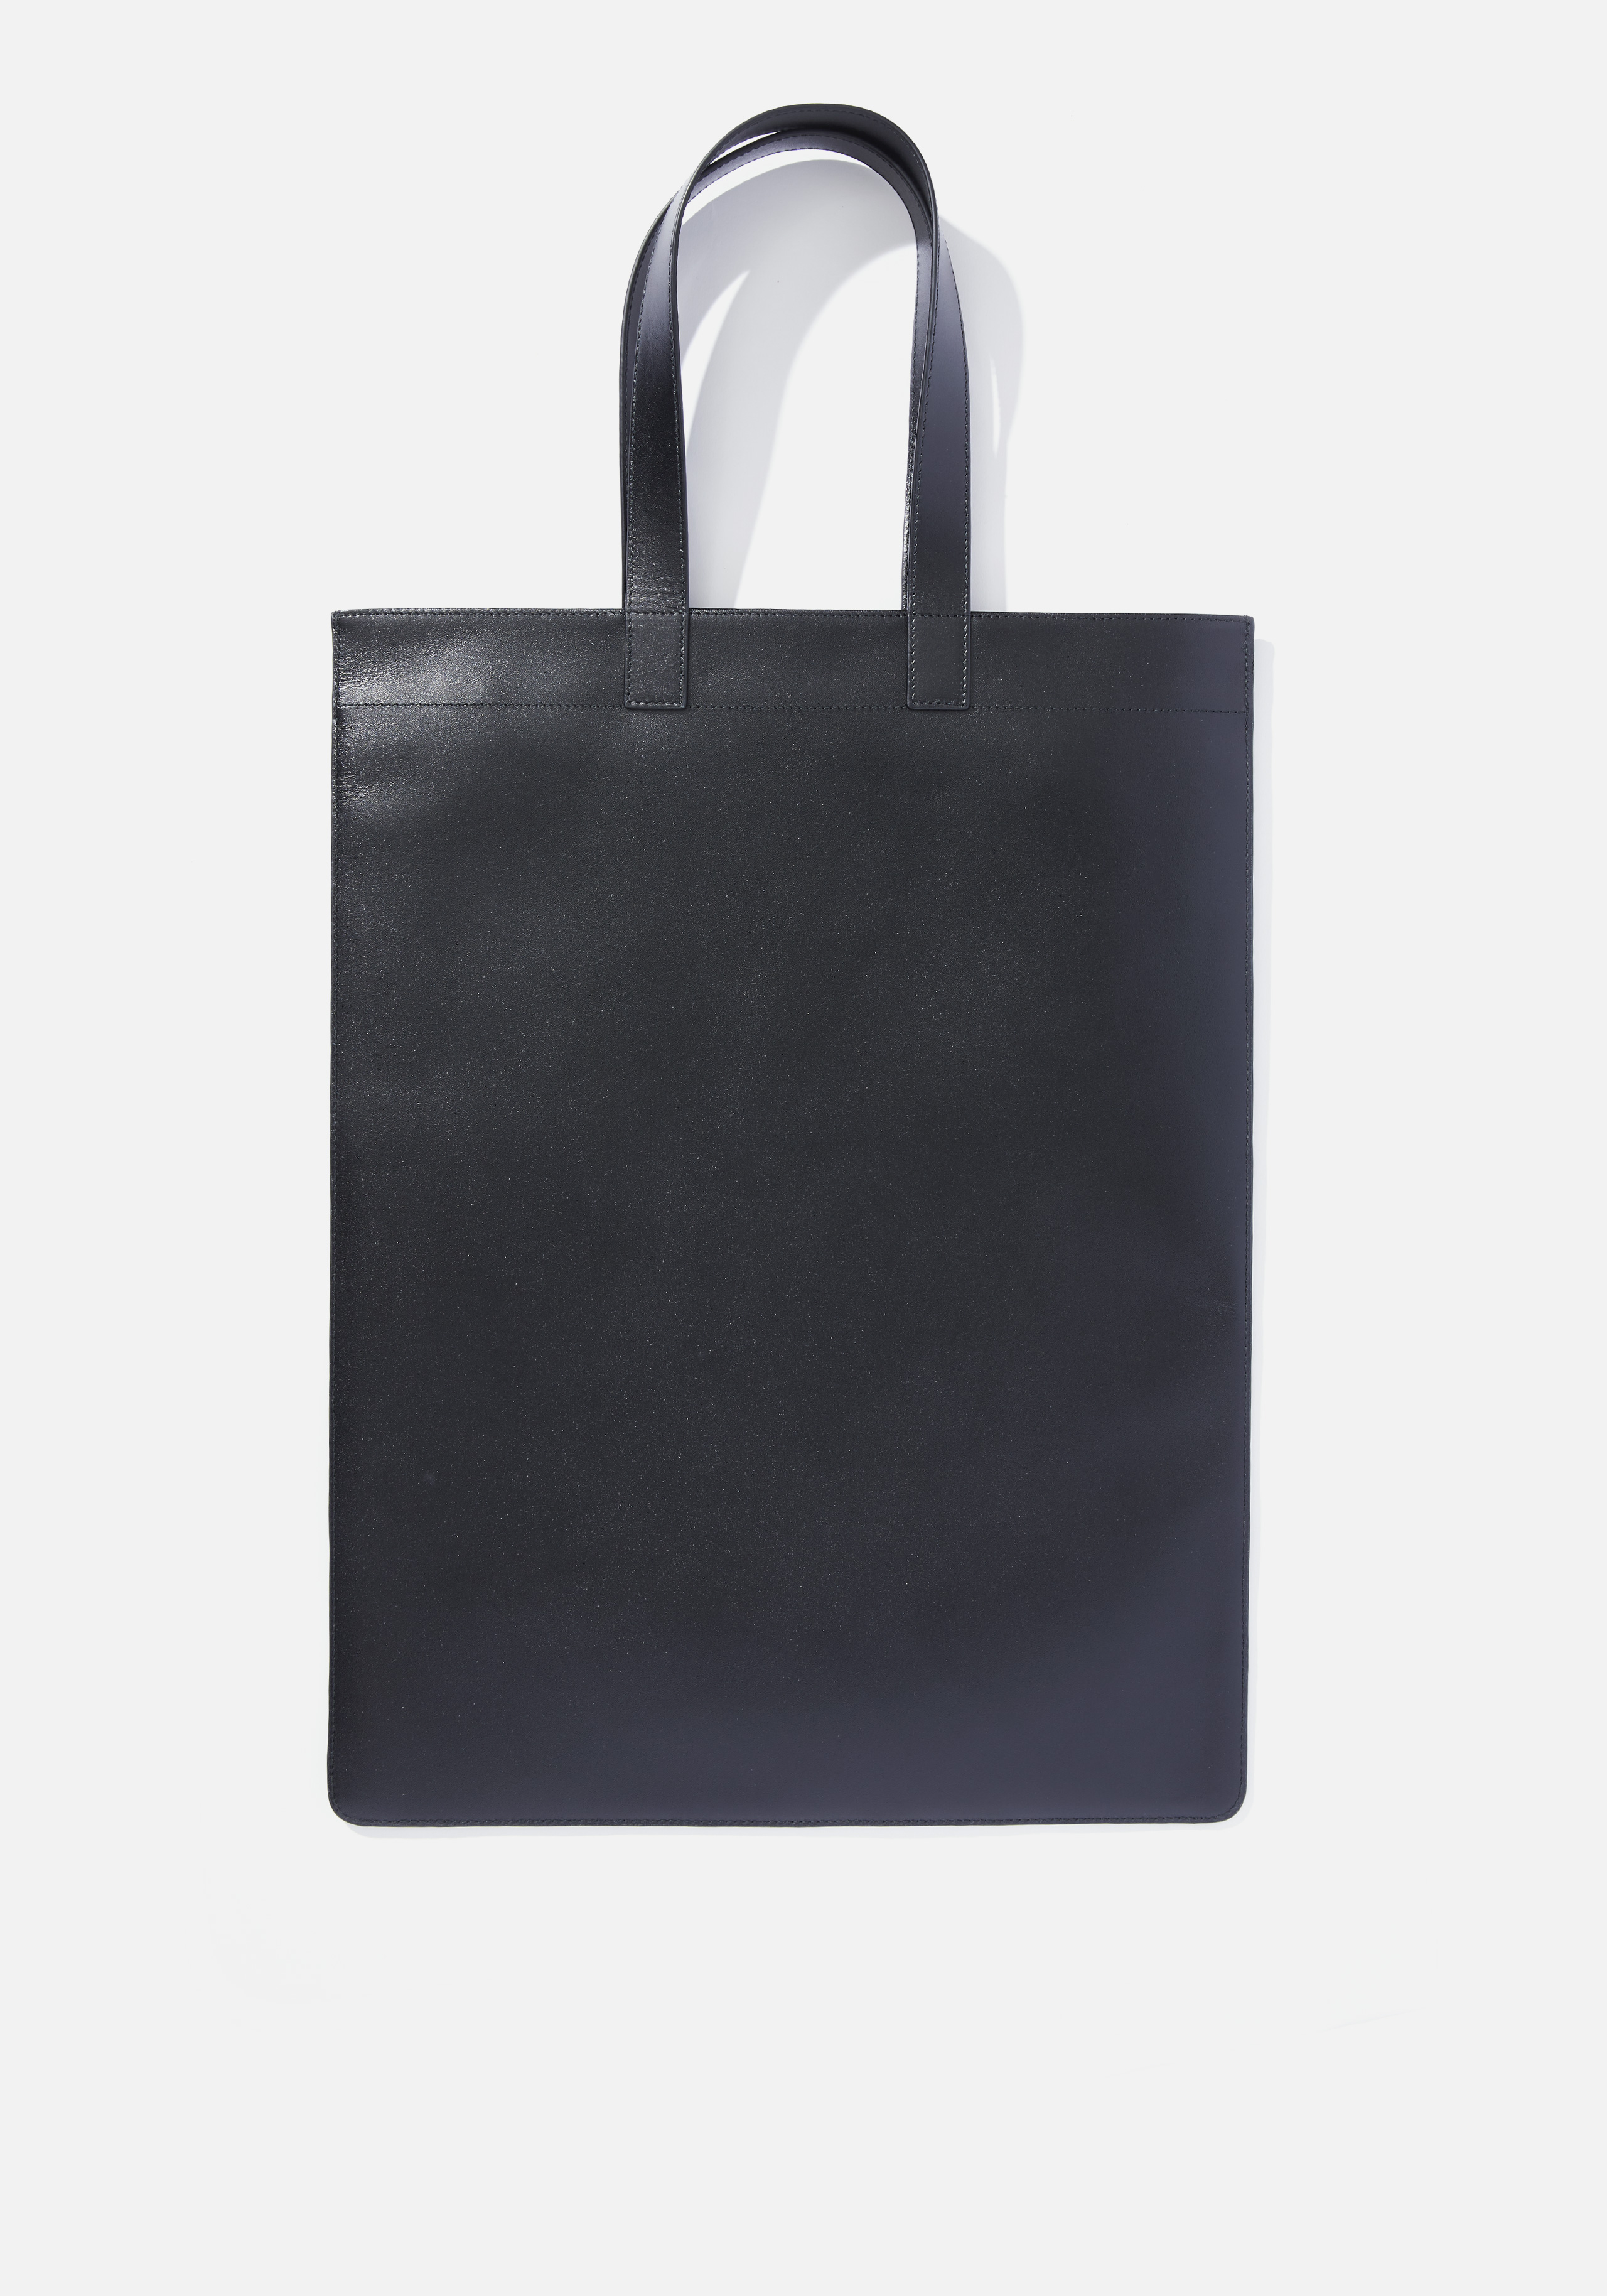 comme des garcons classic leather tote bag 2